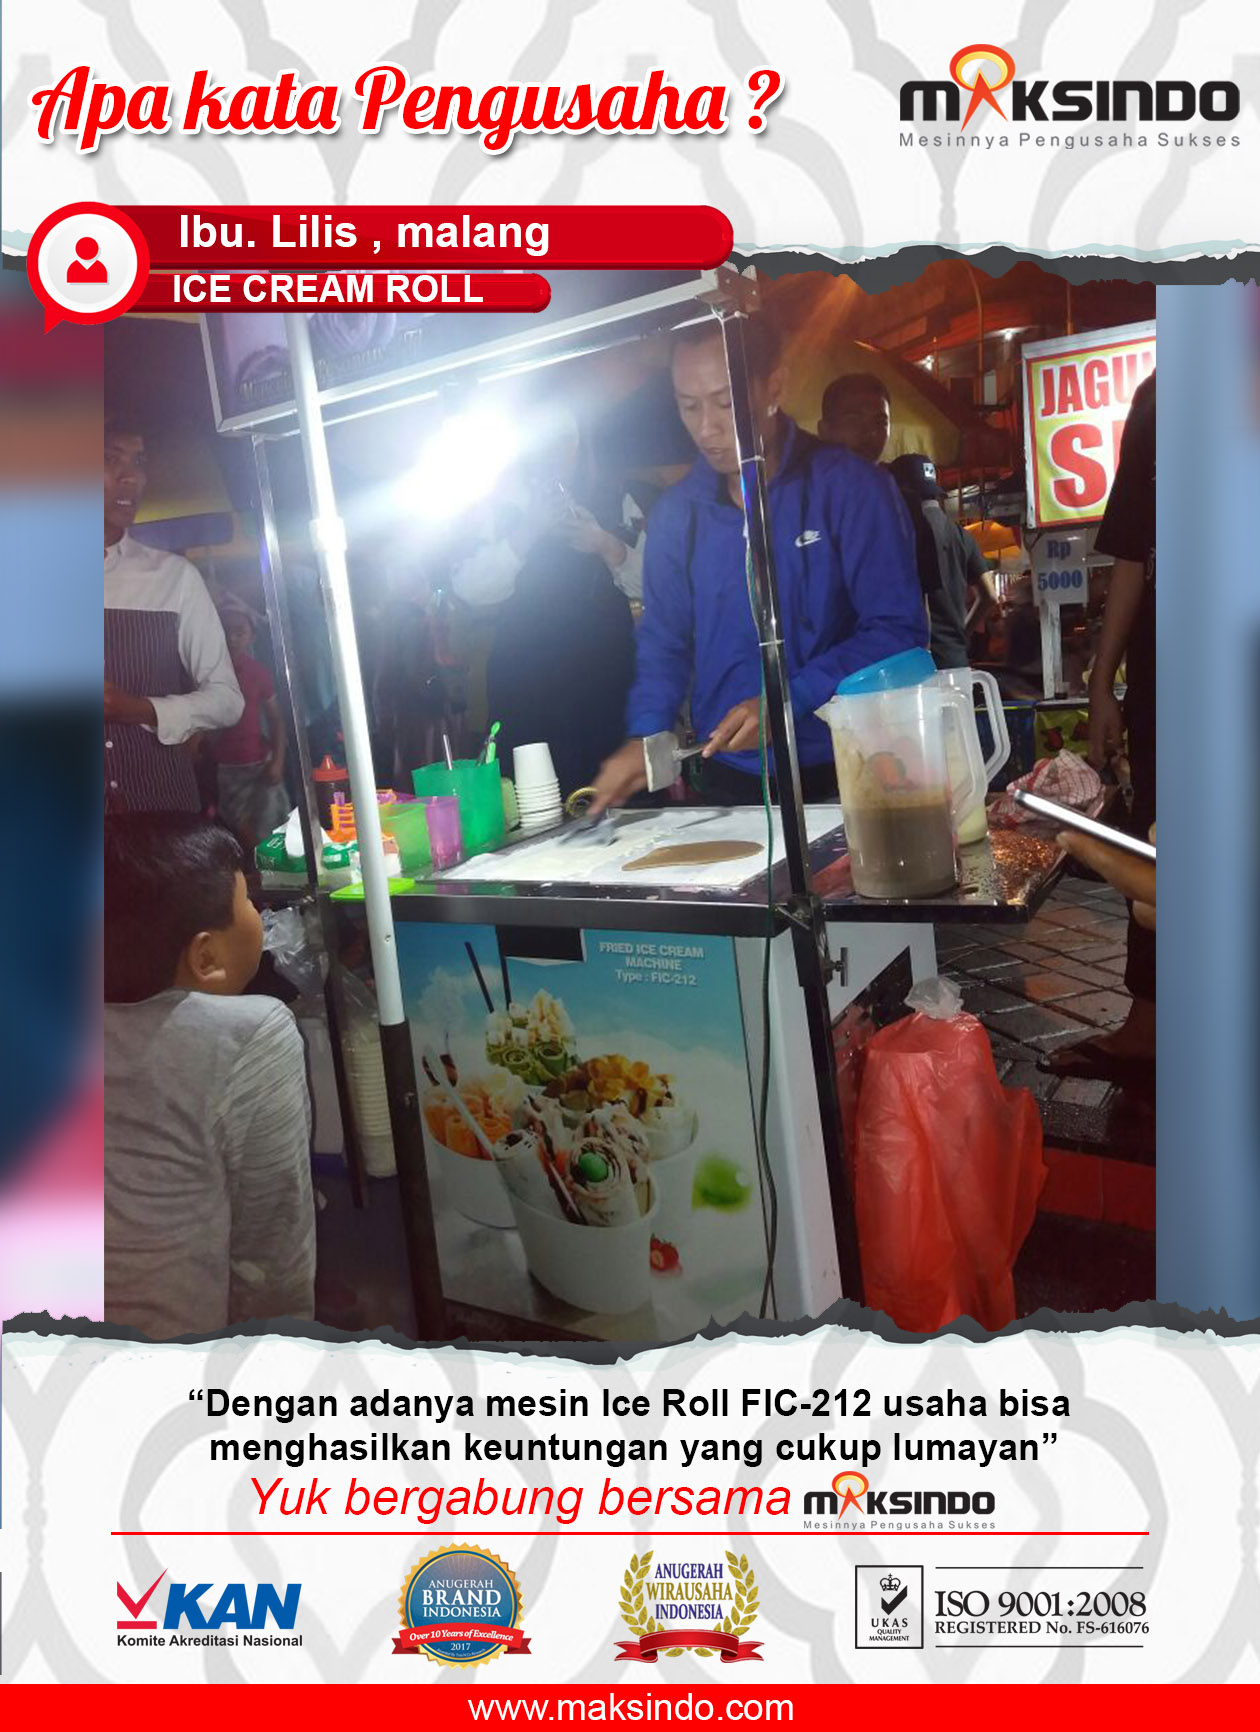 Ice Cream Roll : Mesin Ice Cream Roll Mendatangkan Keuntungan